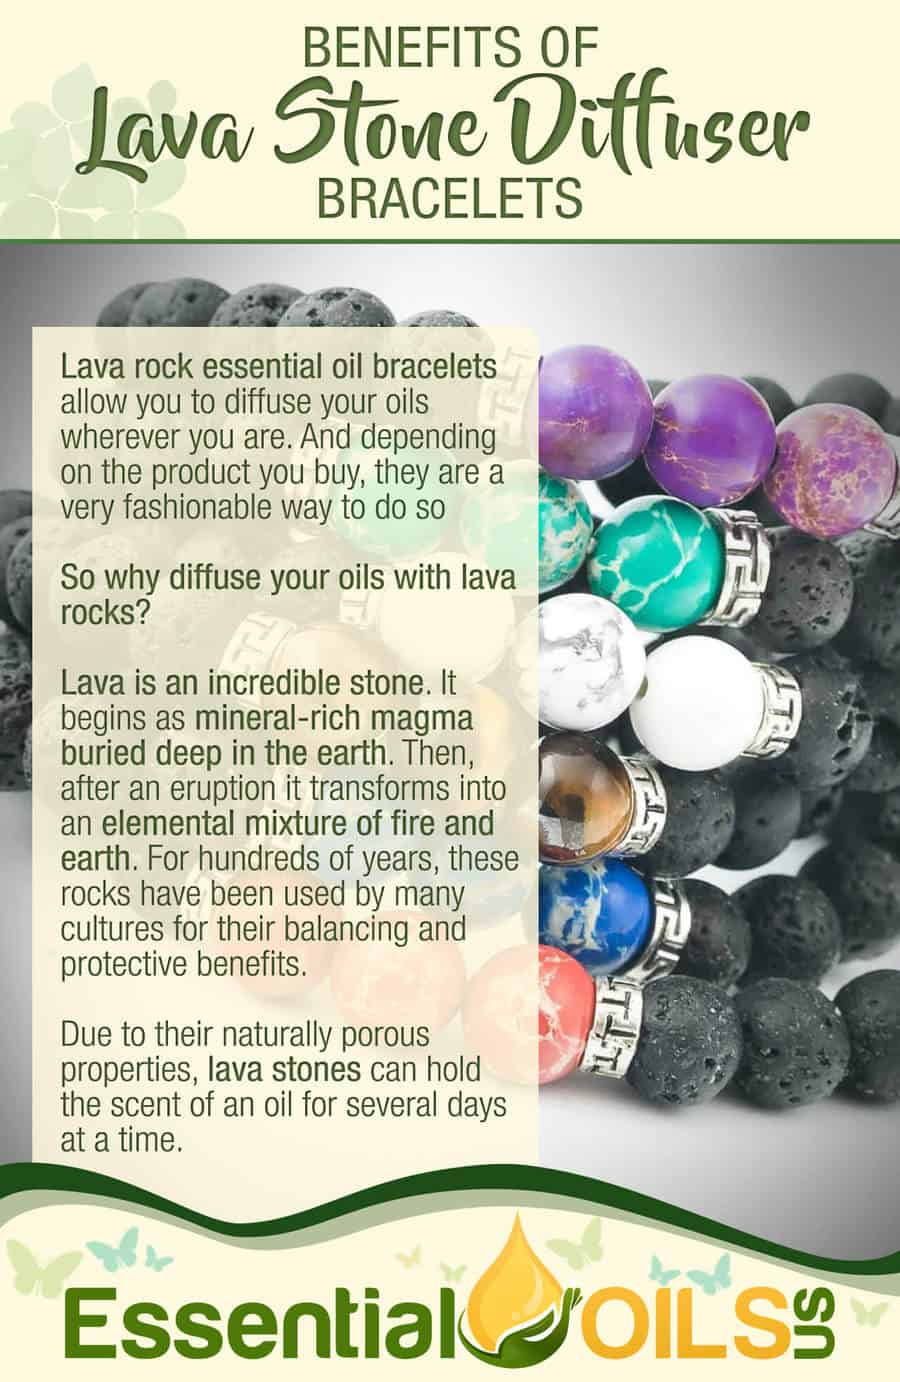 Lava Stone Essential Oil Bracelets - Benefits